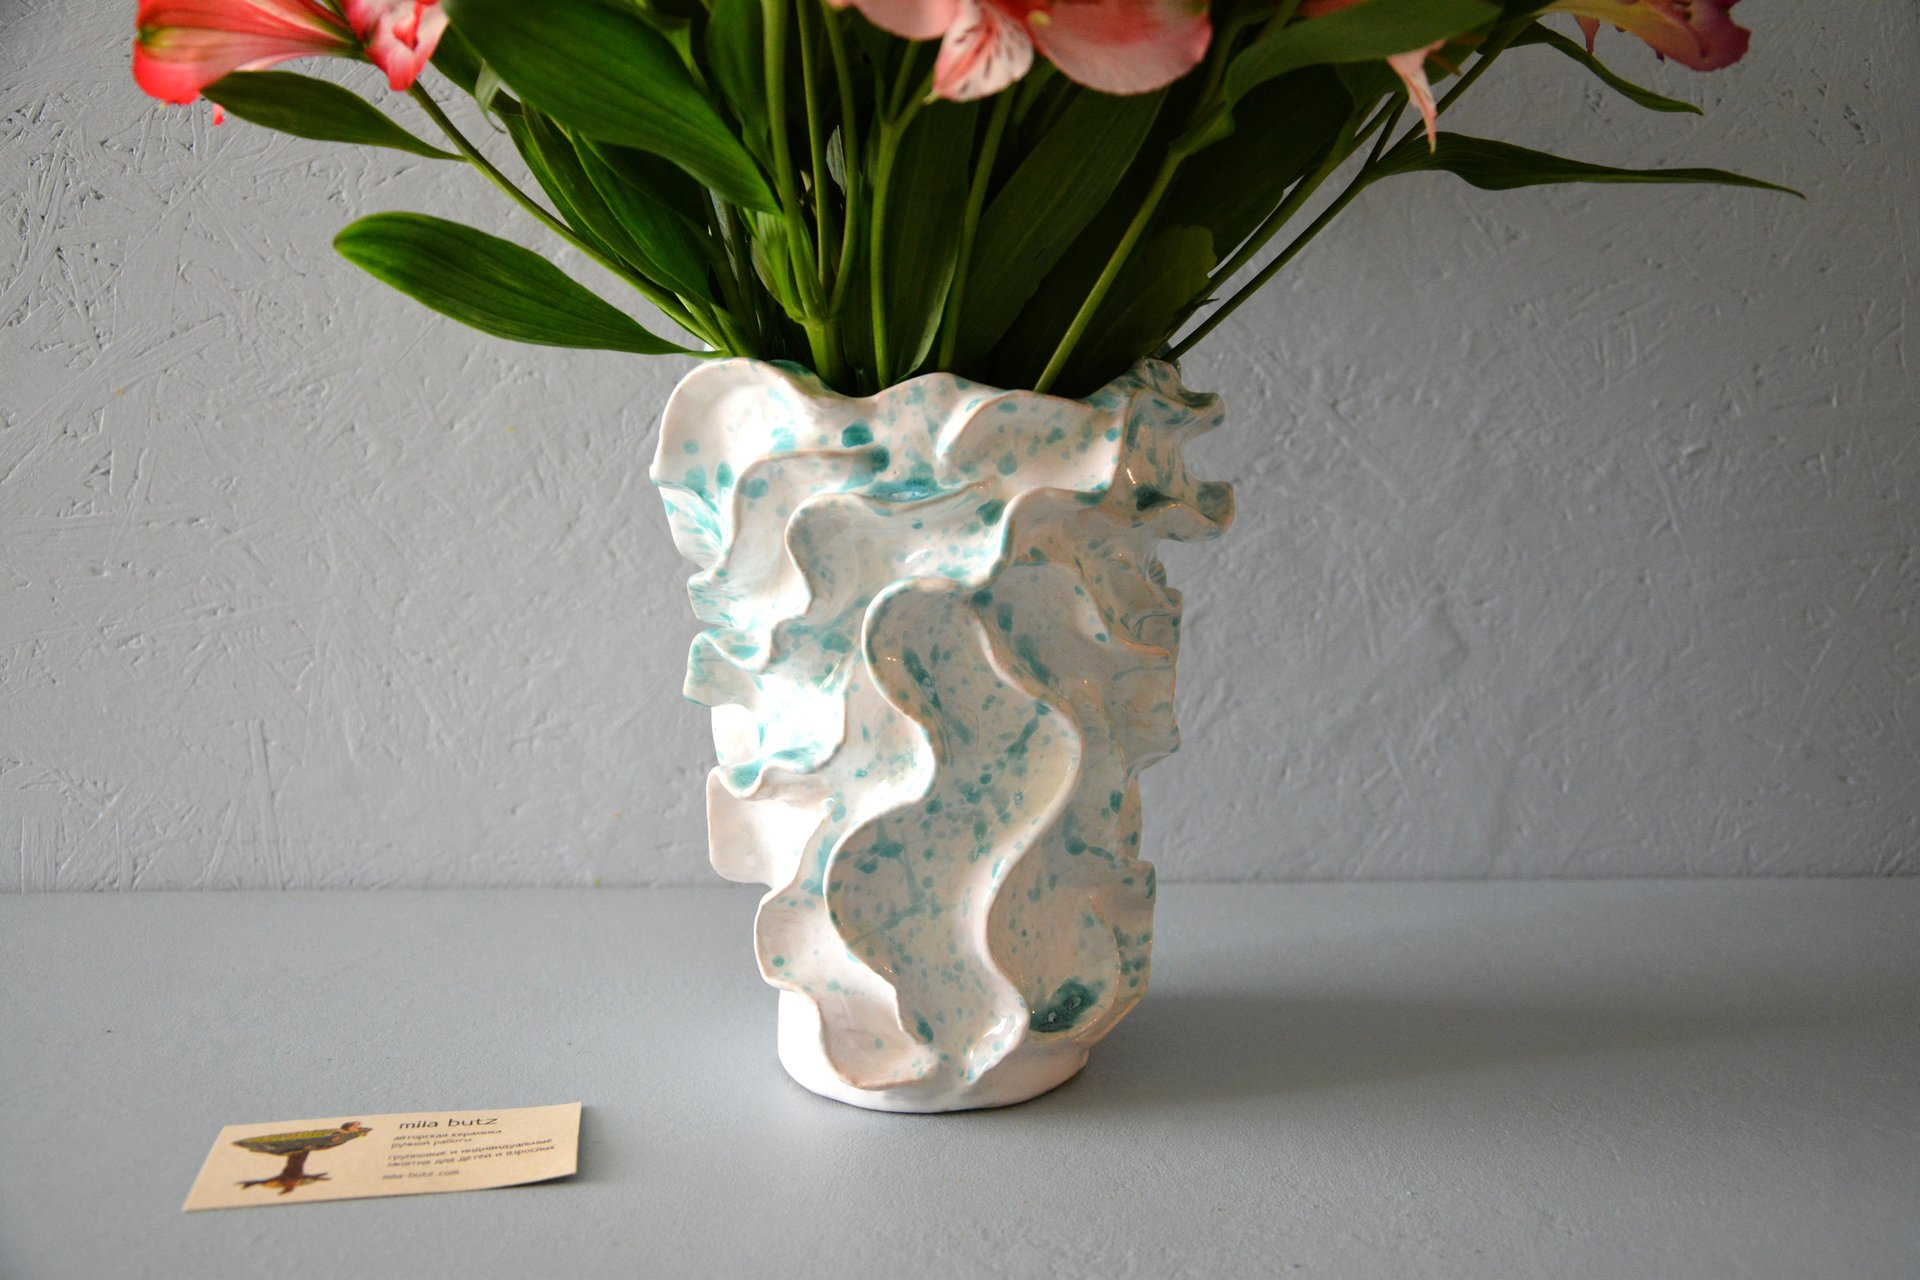 Decorative ceramic vase wave, height - 22 cm, photo 4 of 6. 608.